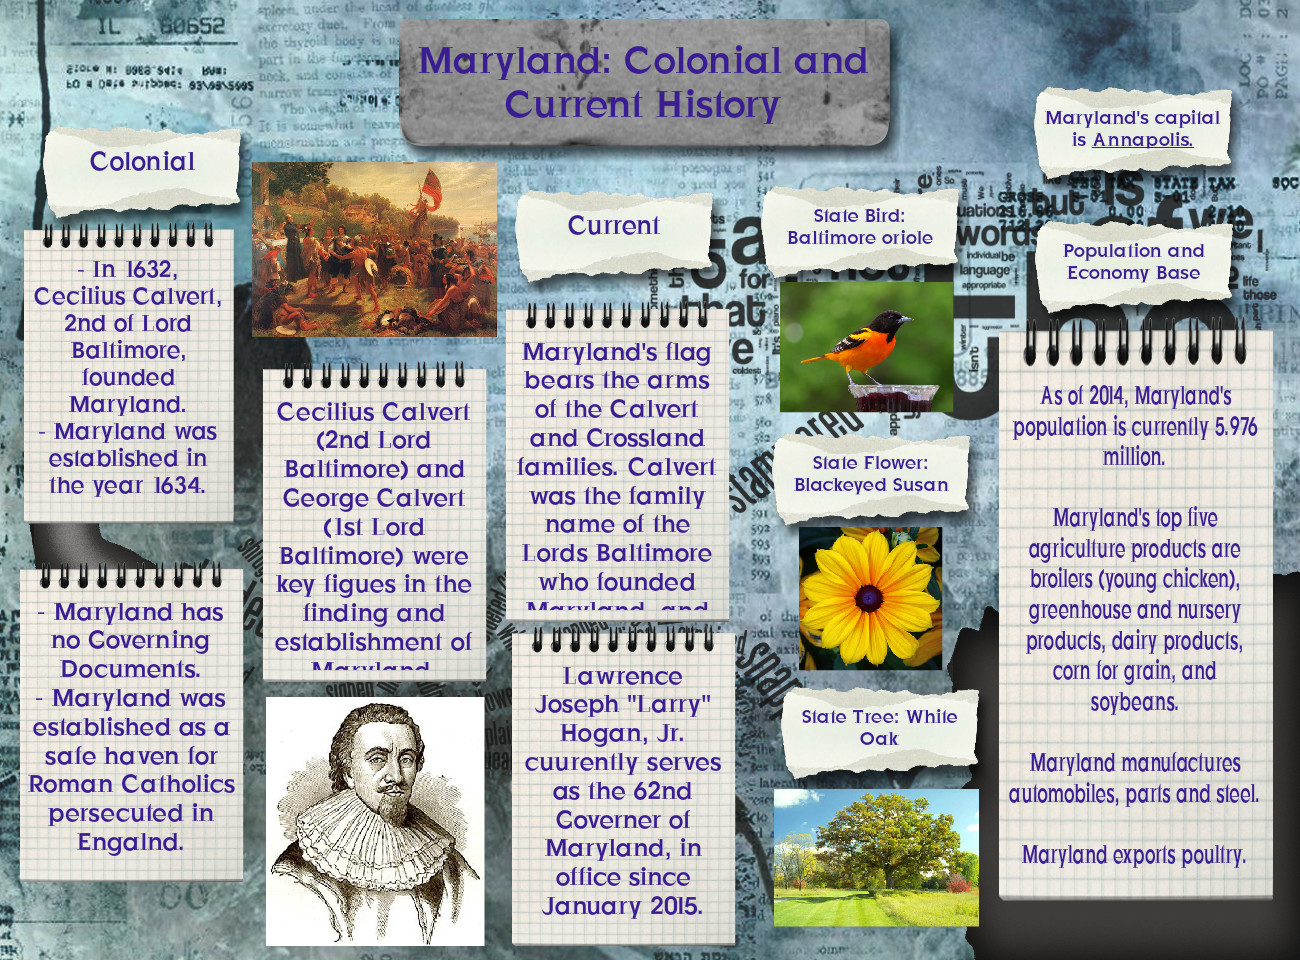 Maryland: Colonial and Current History